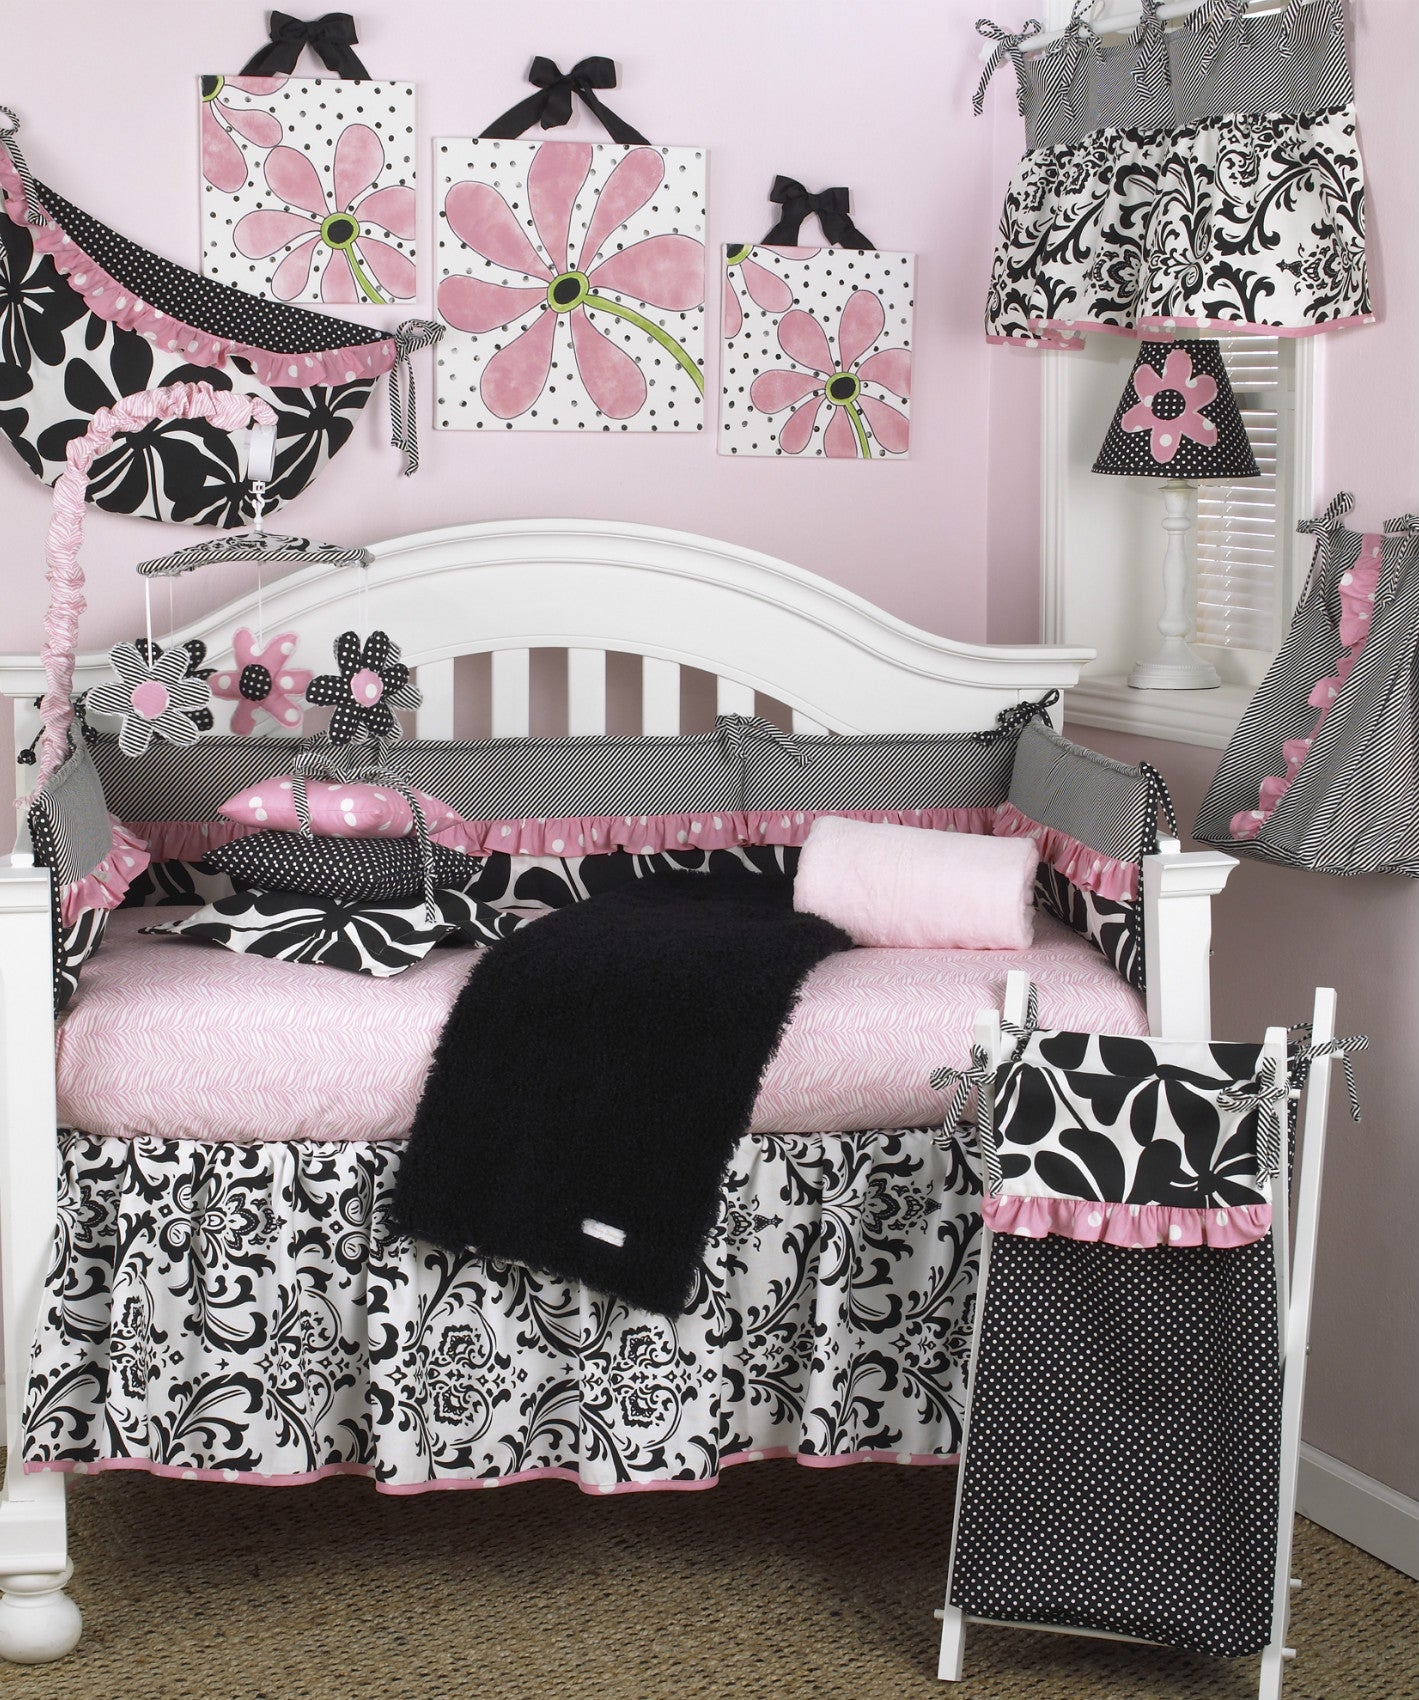 Baby Bedding Pink Bedding Crib Bedding For Girls Cotton Tale Cotton Tale Designs